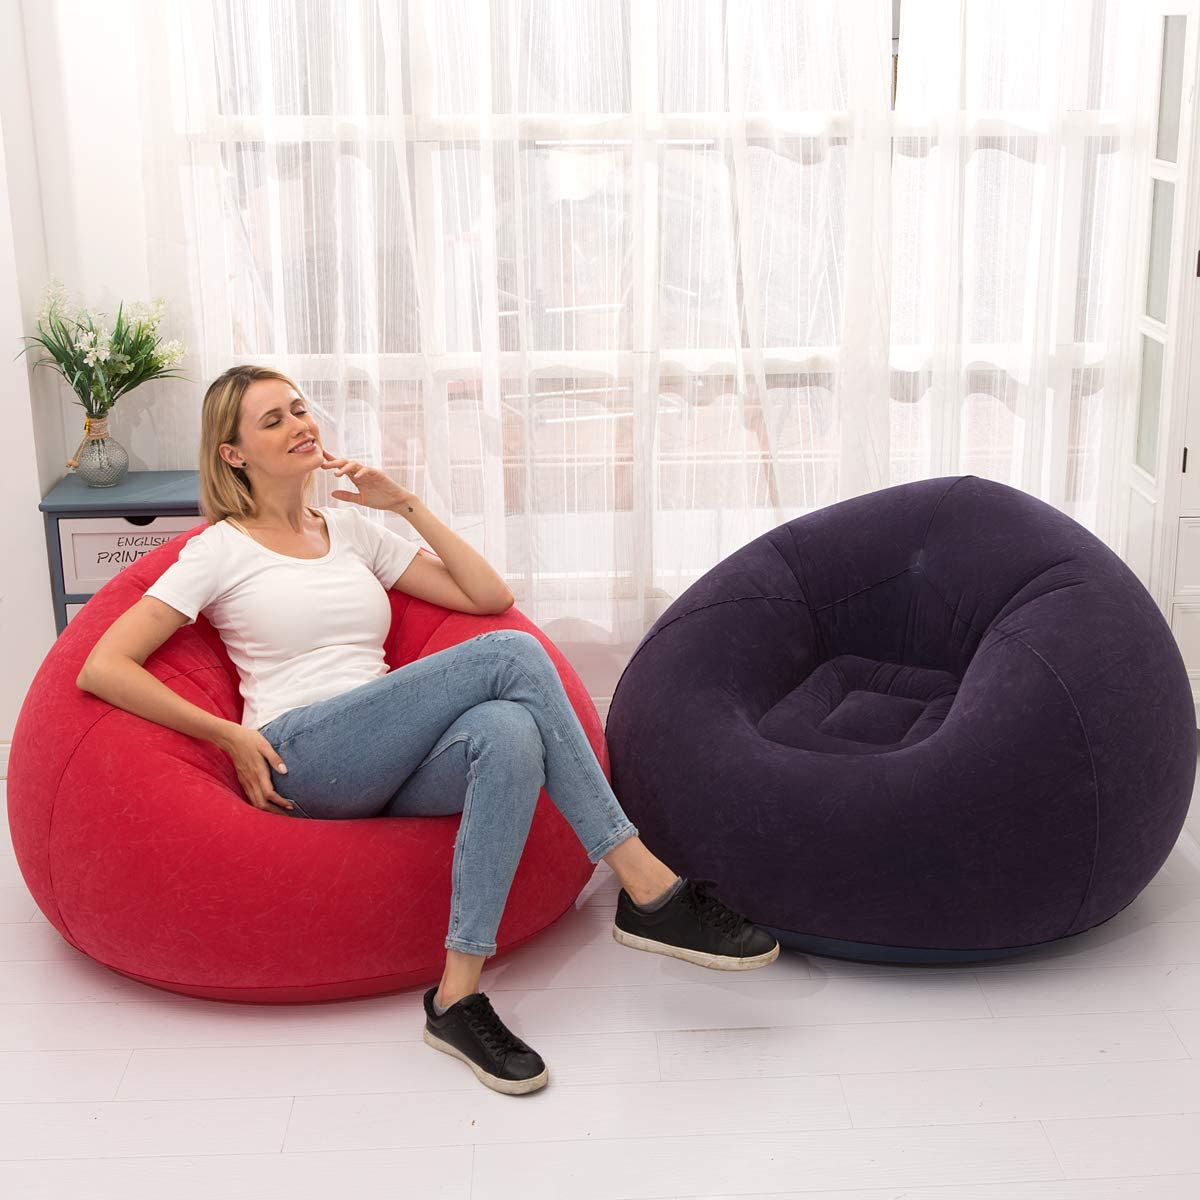 LONEEDY Inflatable Chair Sofa, Blow up Seat Gaming Lounger, Indoor Outdoor Camping Garden Stylish Soft Plush Fabric for Adults Kids Single (Spherical Red) Spherical Red